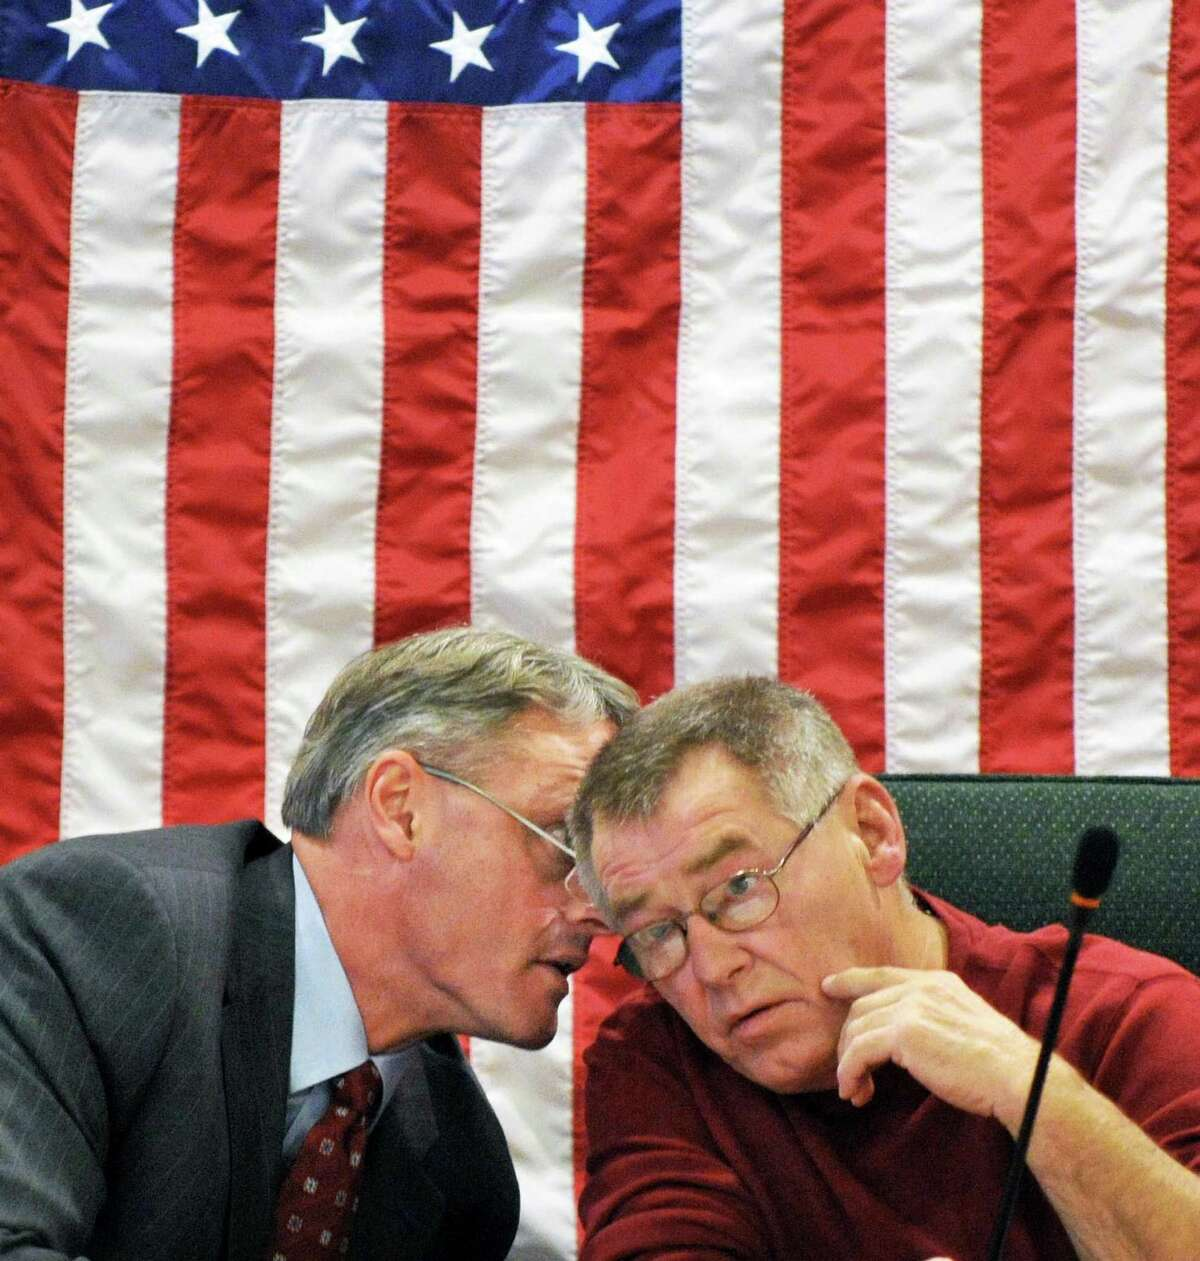 Saratoga County Administrator Spencer Hellwig, left, and Milton Supervisor and chairman of the law and finance committee, Frank Thompson confer during the Saratoga Board of Supervisors' budget workshop session in Ballston Spa, Friday, Nov. 18, 2011. (John Carl D'Annibale / Times Union)